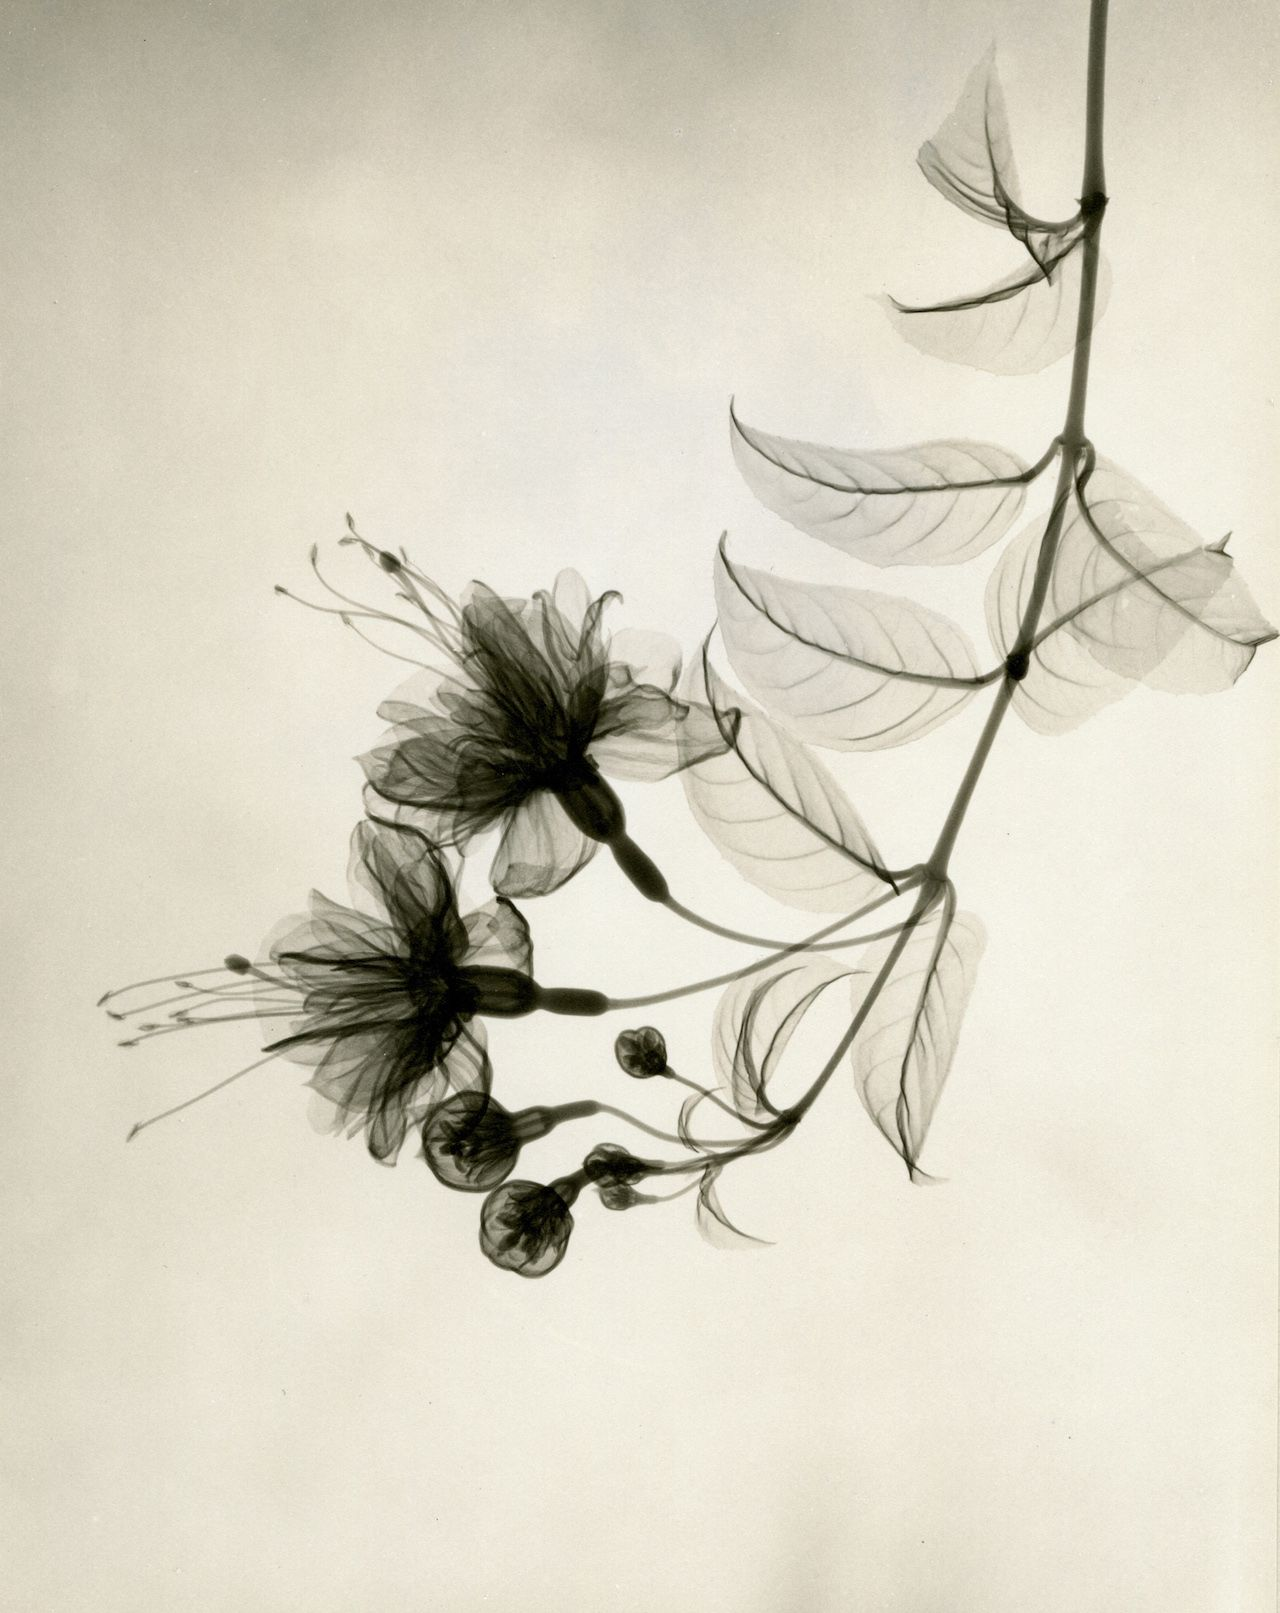 A radiologistus xray photographs of flowers from the s photo